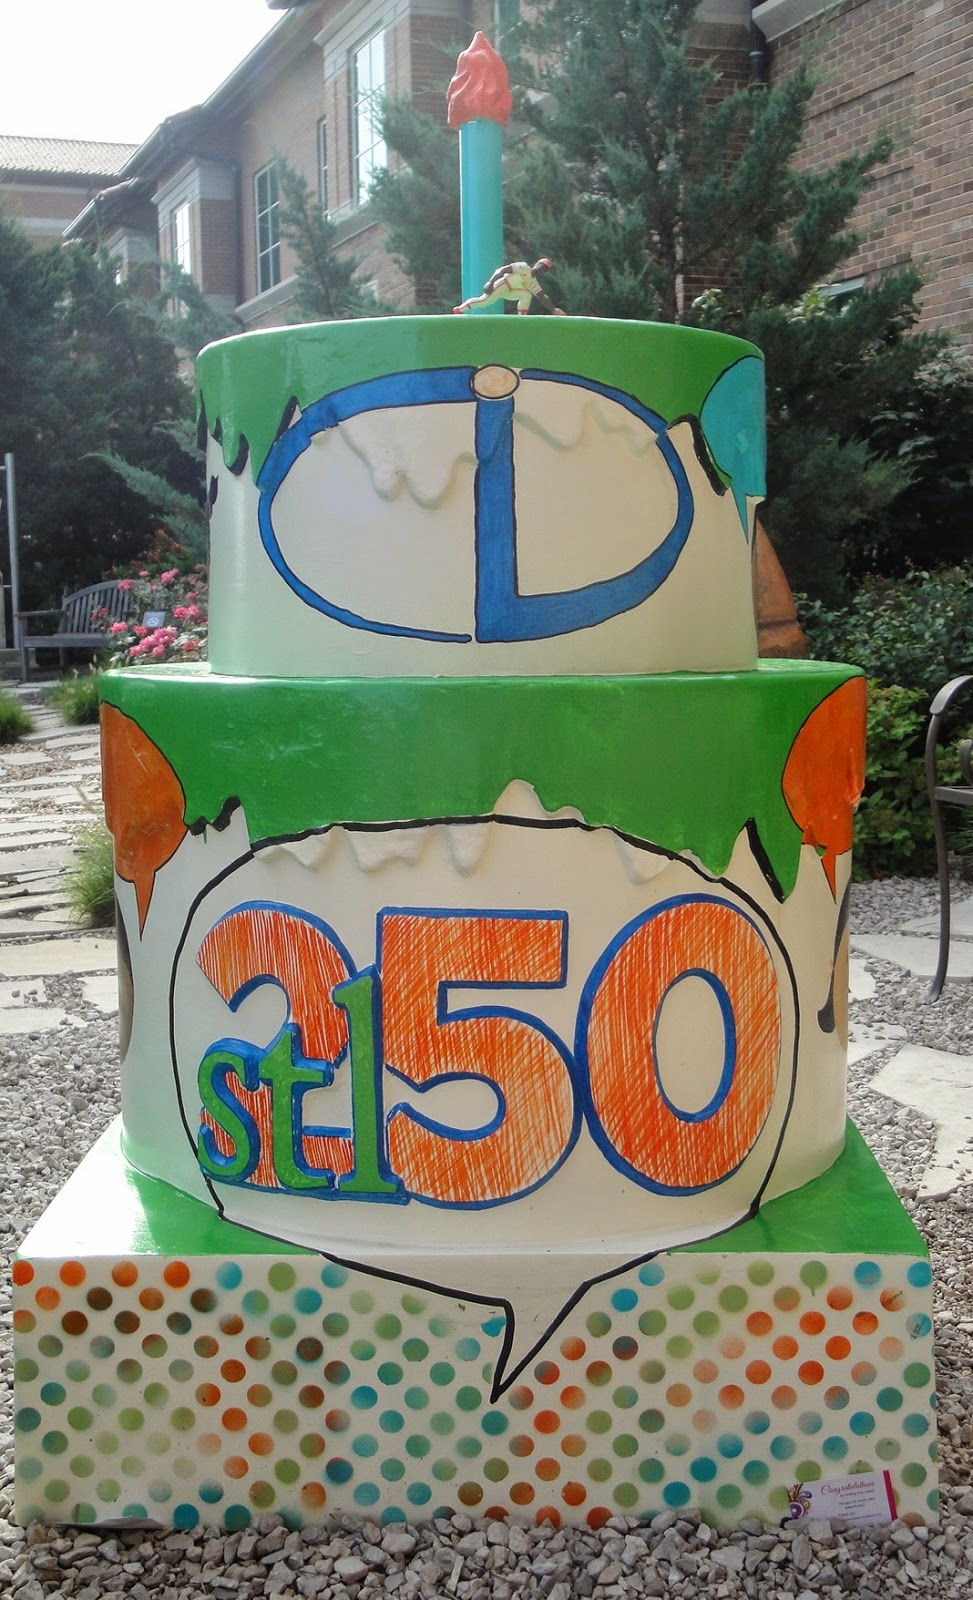 St louis 250 years 250 cakes here we go 176 for Cid special bureau 13 april 2014